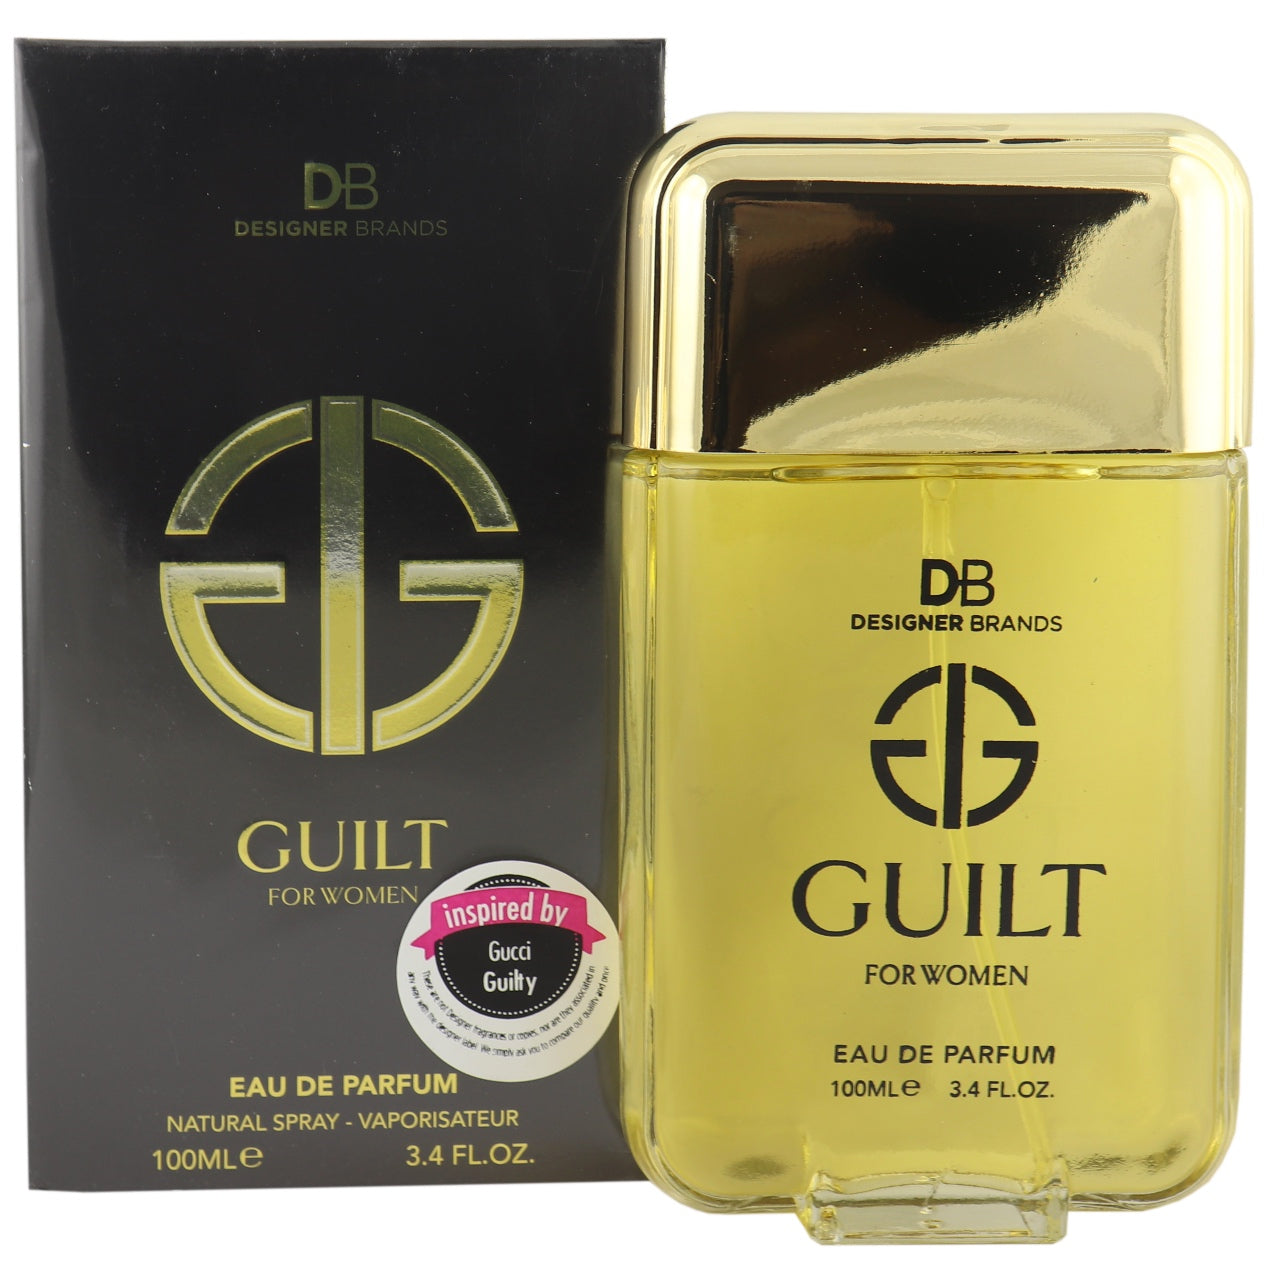 DB Cosmetics Fragrance -Guilt, for Women